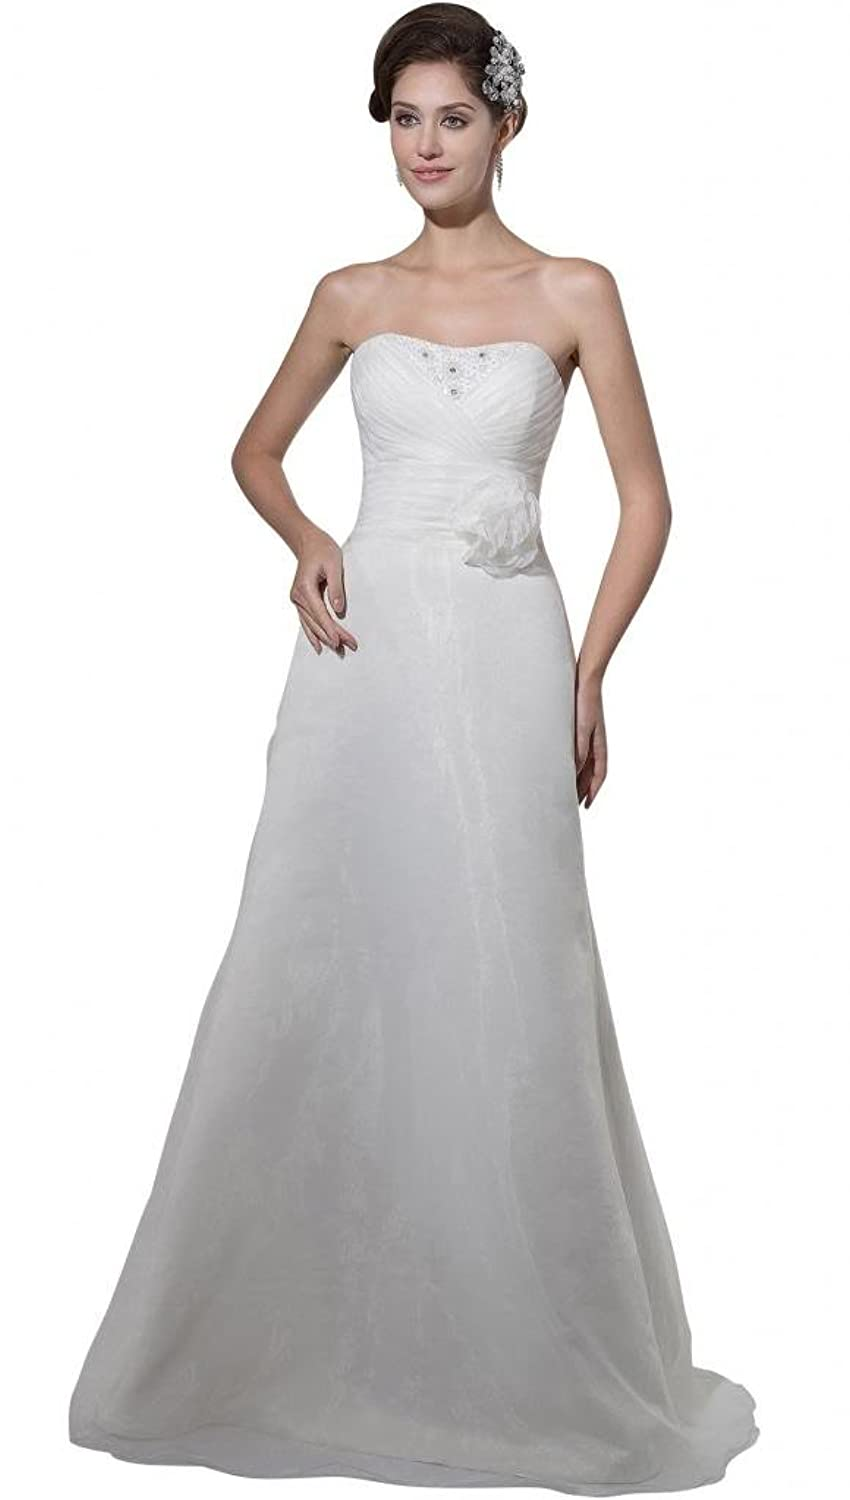 GEORGE BRIDE Simple Strapless Beading Slim Fit Wedding Dress with Handmade Flower